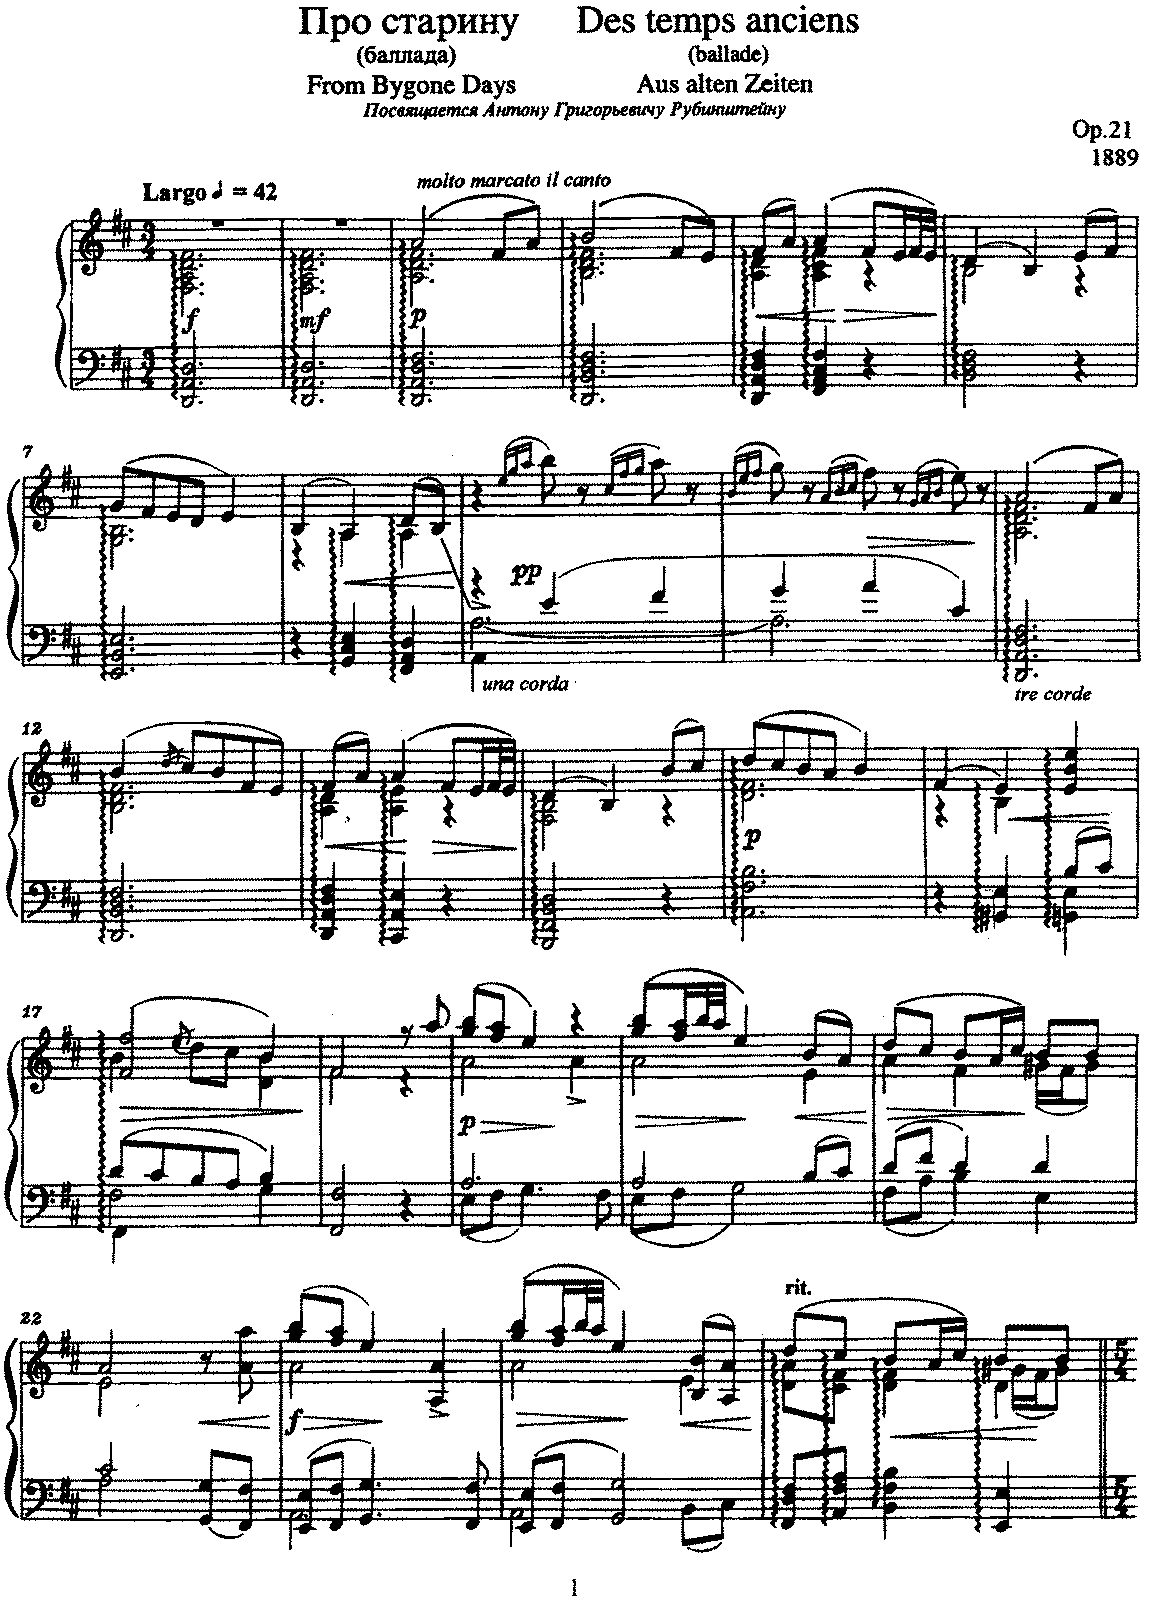 Liadov - Op.21 - Ballad (From Bygone Days).pdf